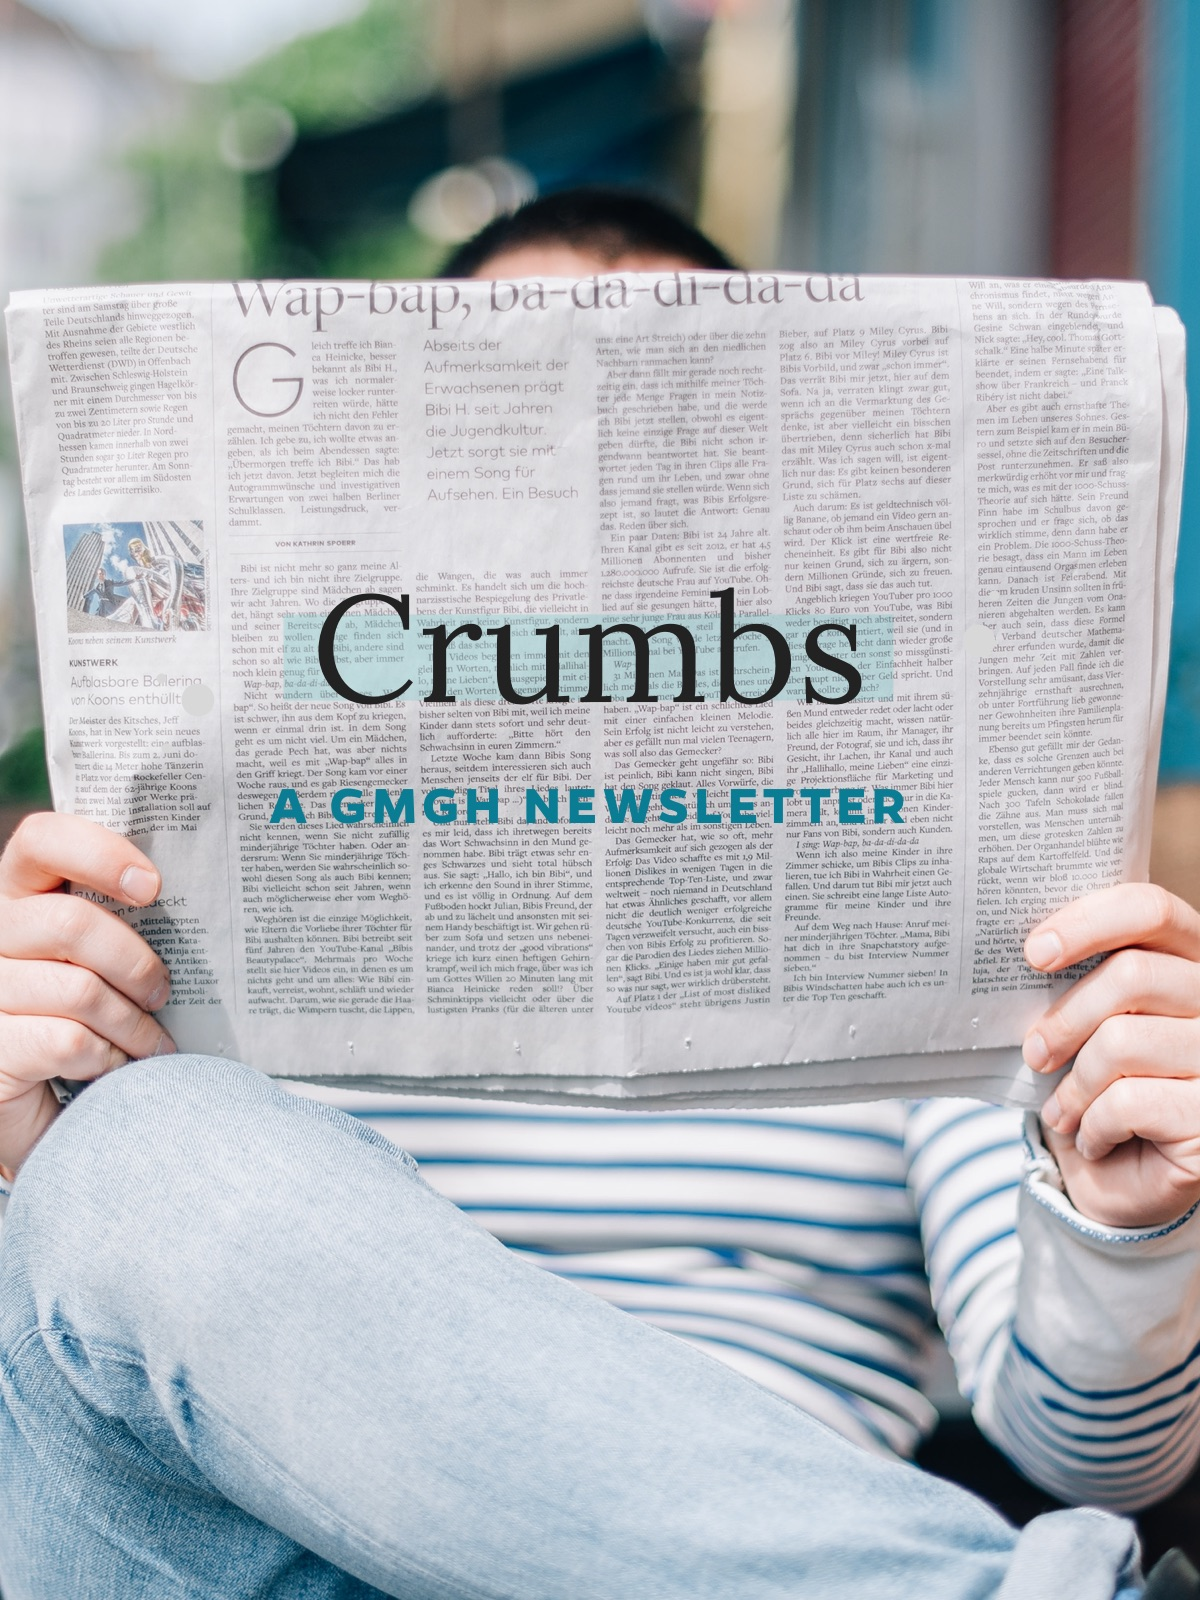 Introducing Crumbs, a GMGH newsletter